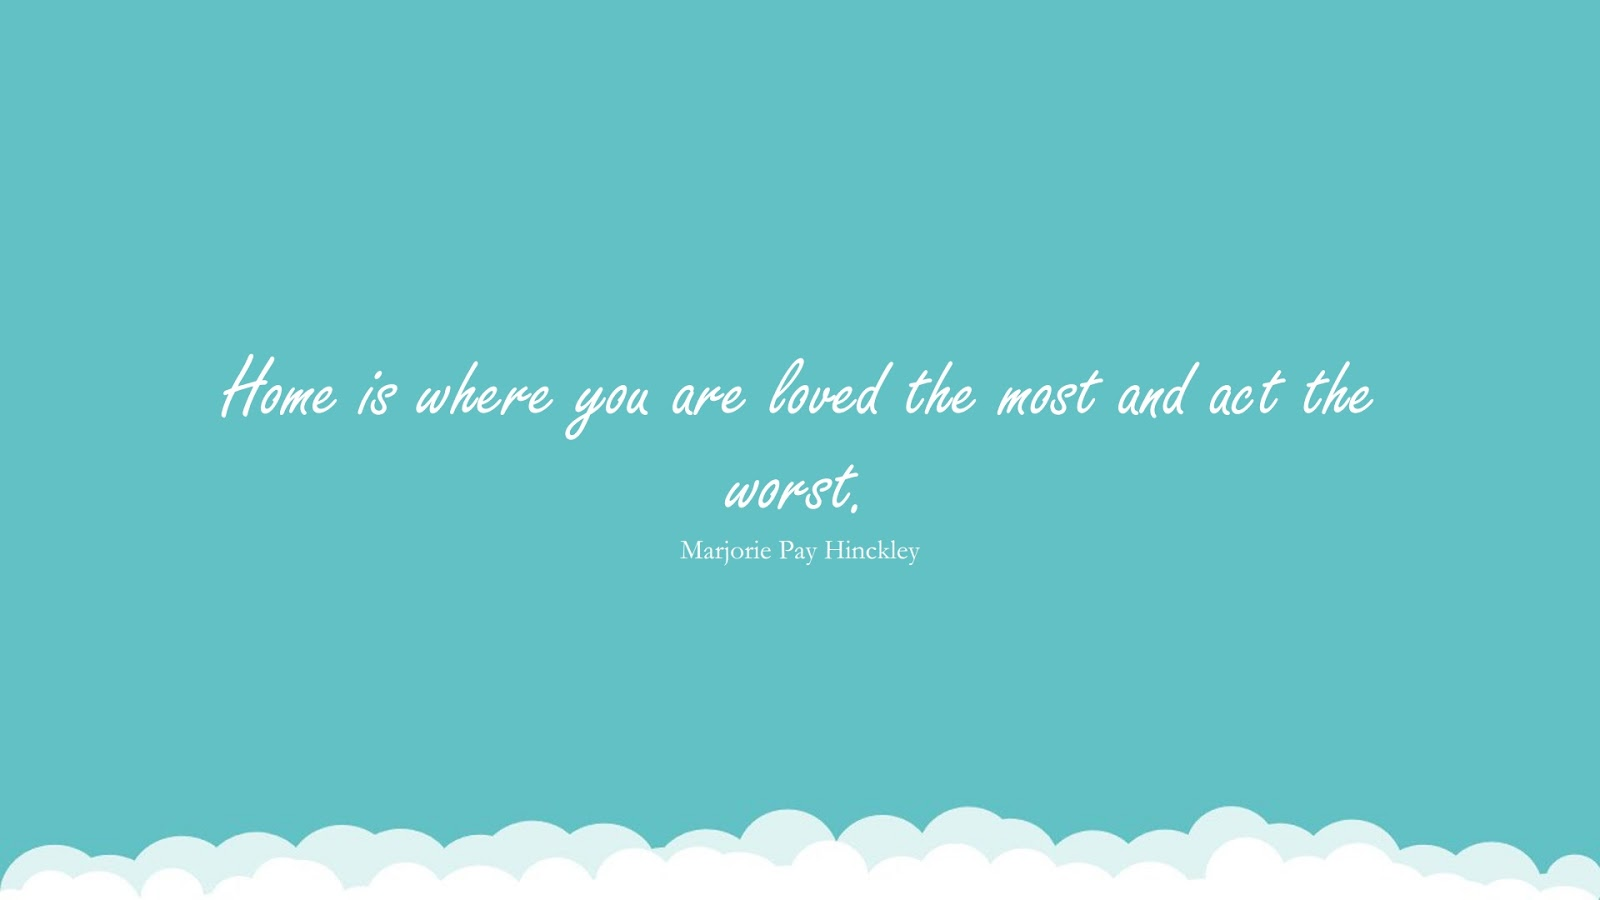 Home is where you are loved the most and act the worst. (Marjorie Pay Hinckley);  #FamilyQuotes